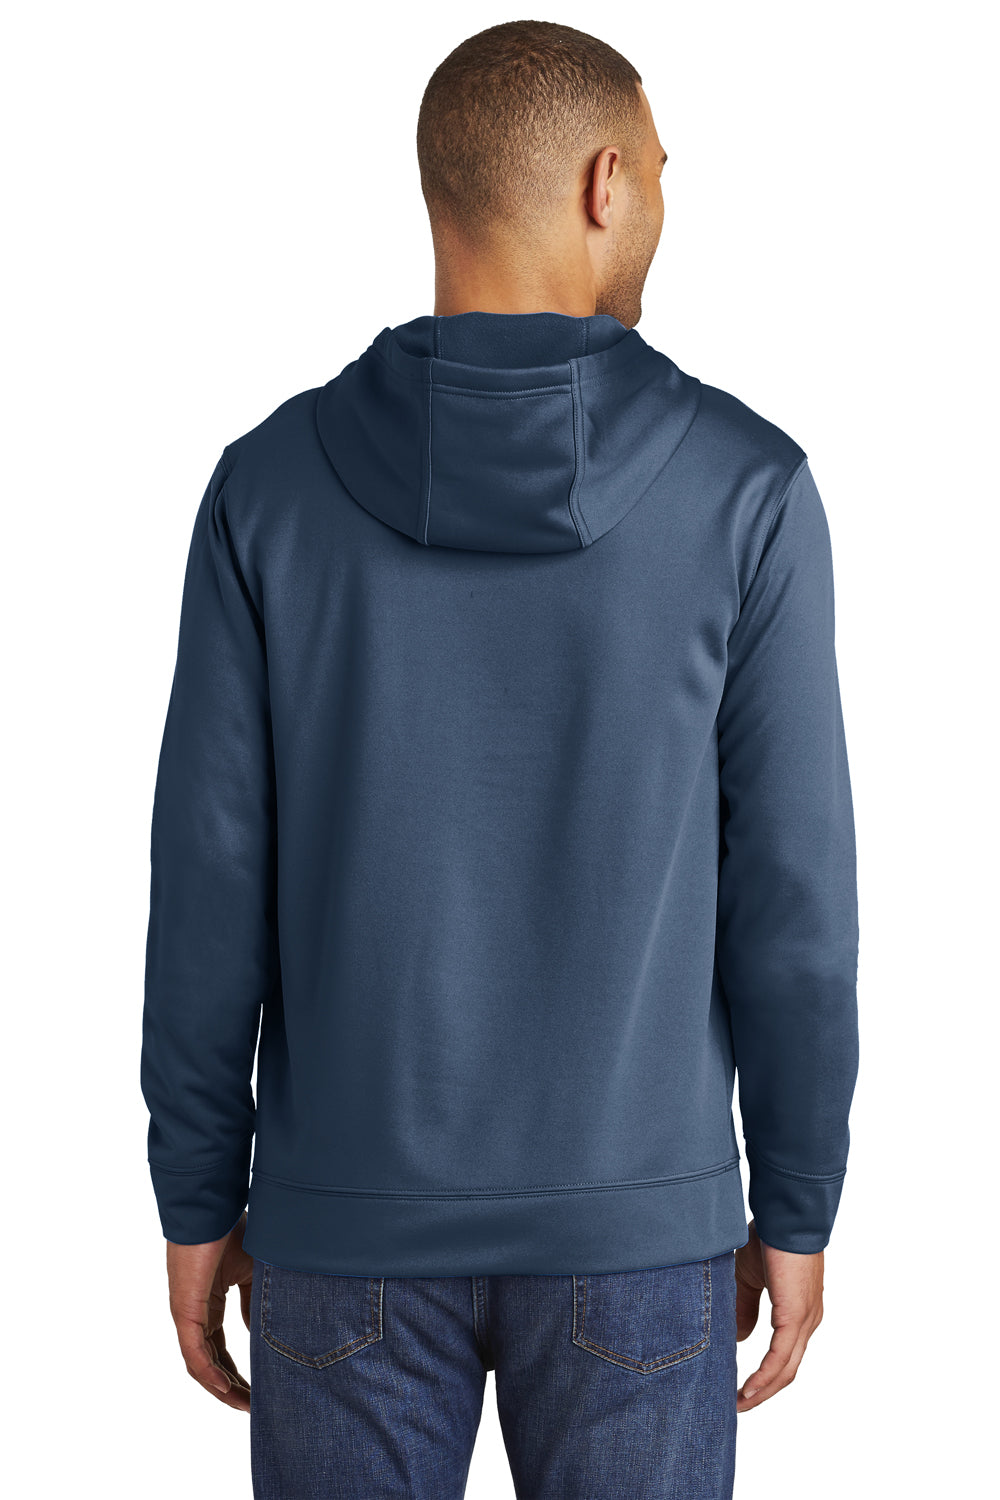 Port & Company PC590H Mens Dry Zone Performance Moisture Wicking Fleece Hooded Sweatshirt Hoodie Navy Blue Back